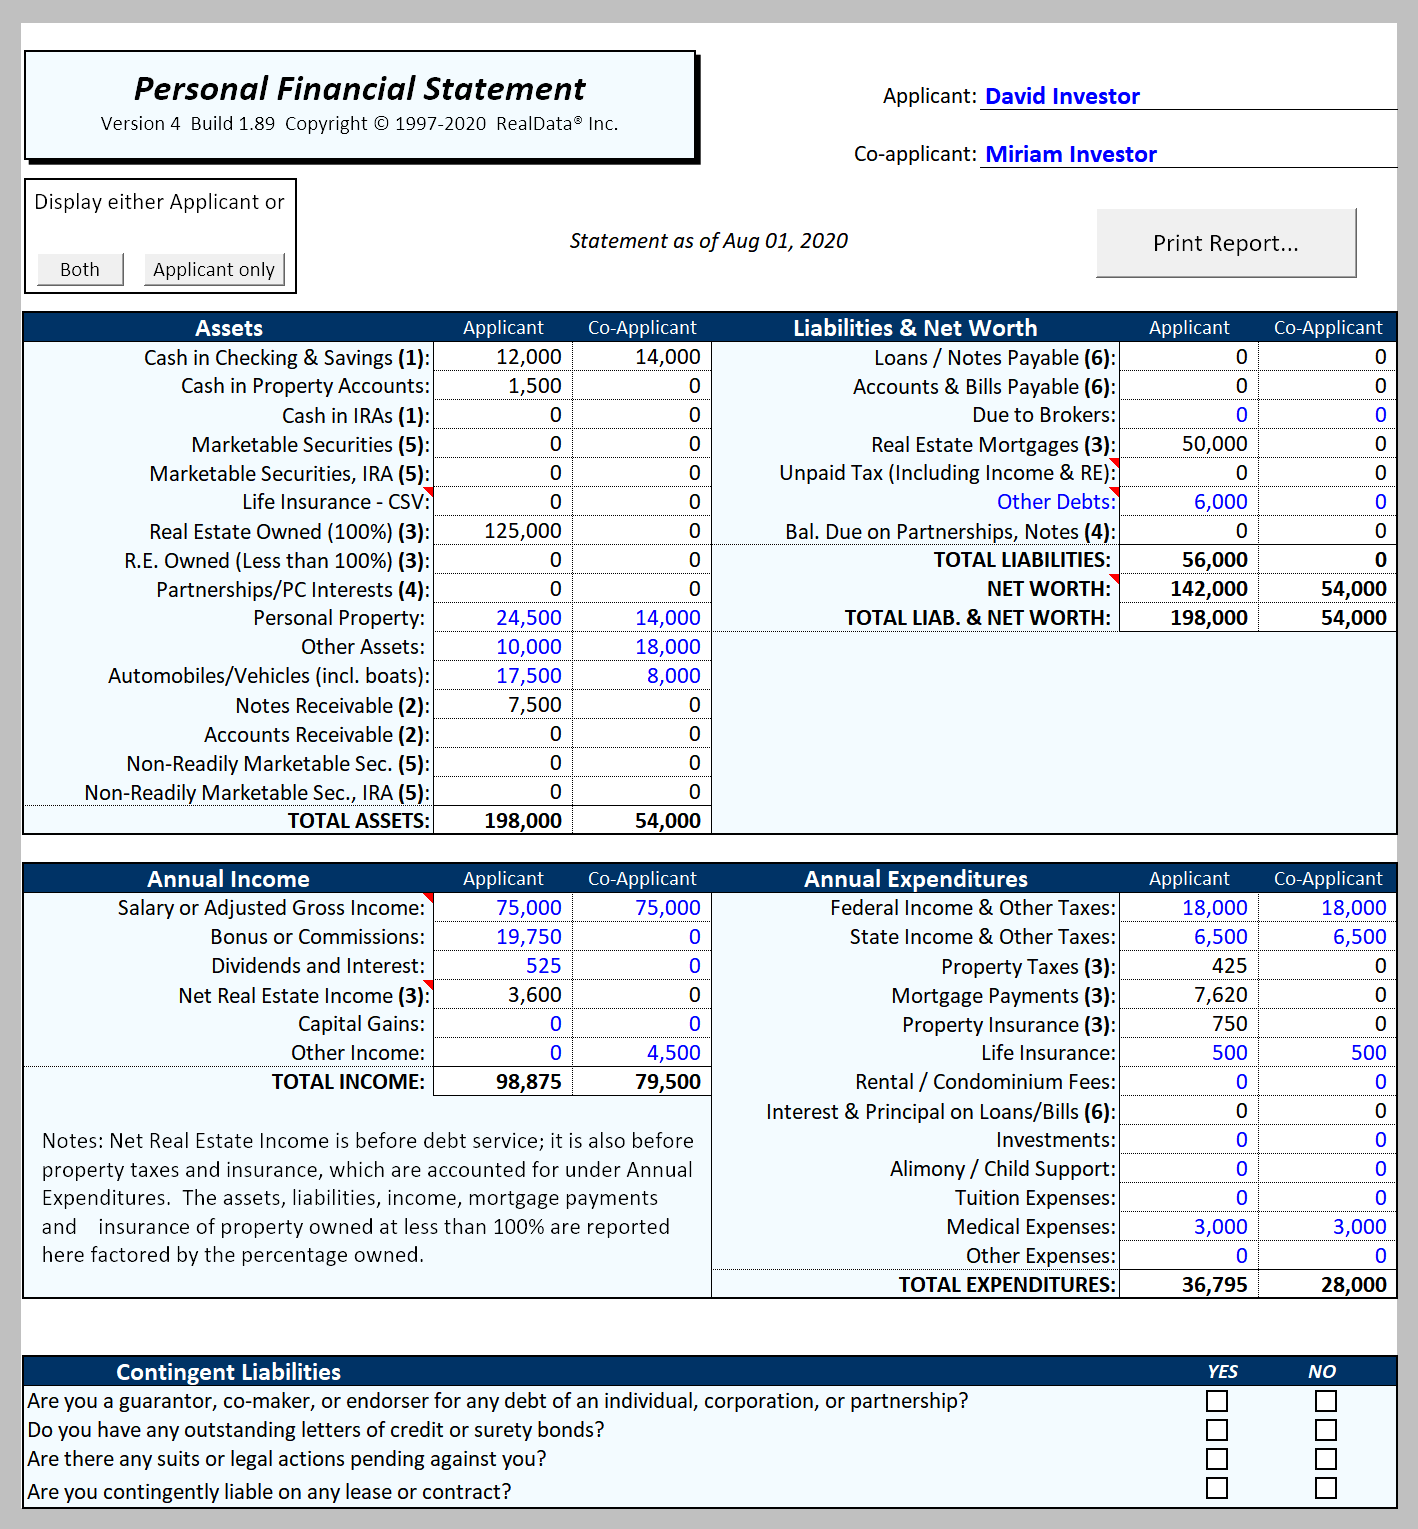 Sample Report. Personal Financial Statement